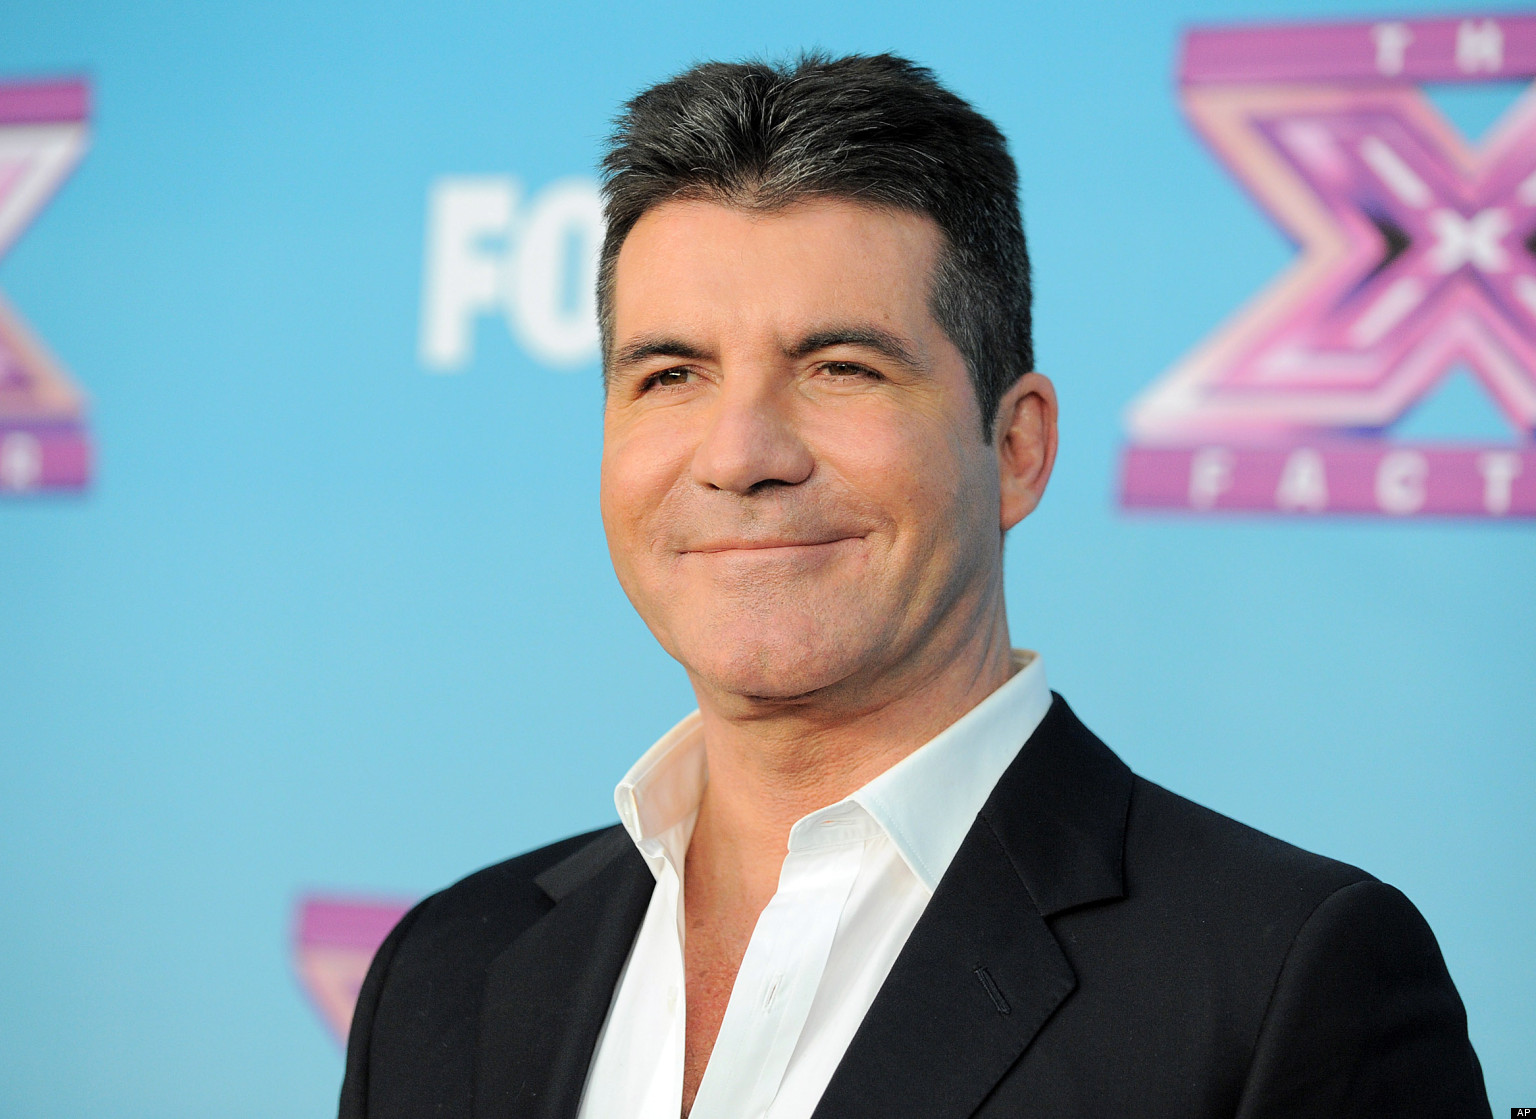 simon cowell biography